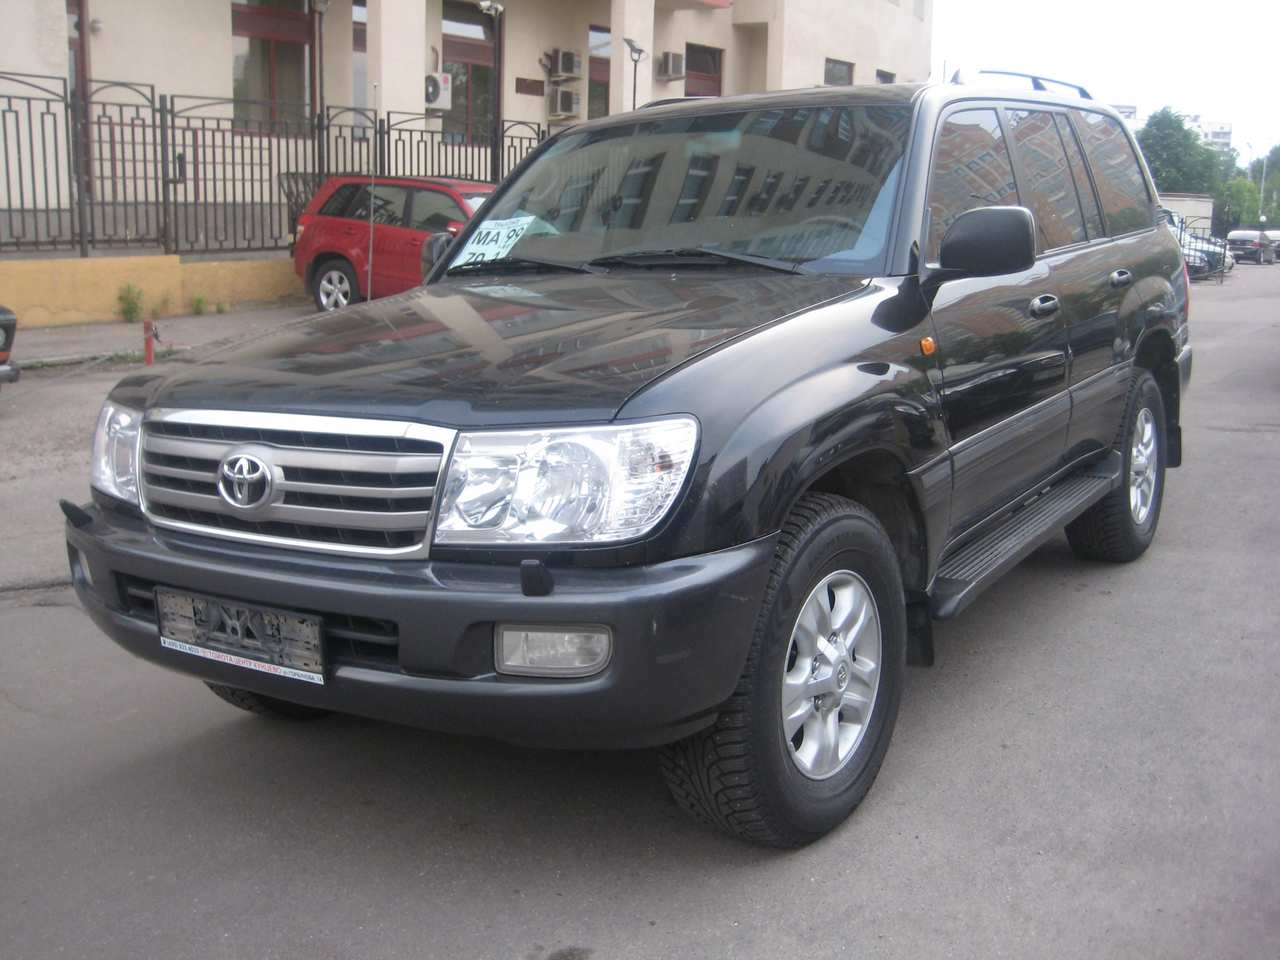 2005 toyota land cruiser photos 4 2 diesel automatic for sale. Black Bedroom Furniture Sets. Home Design Ideas